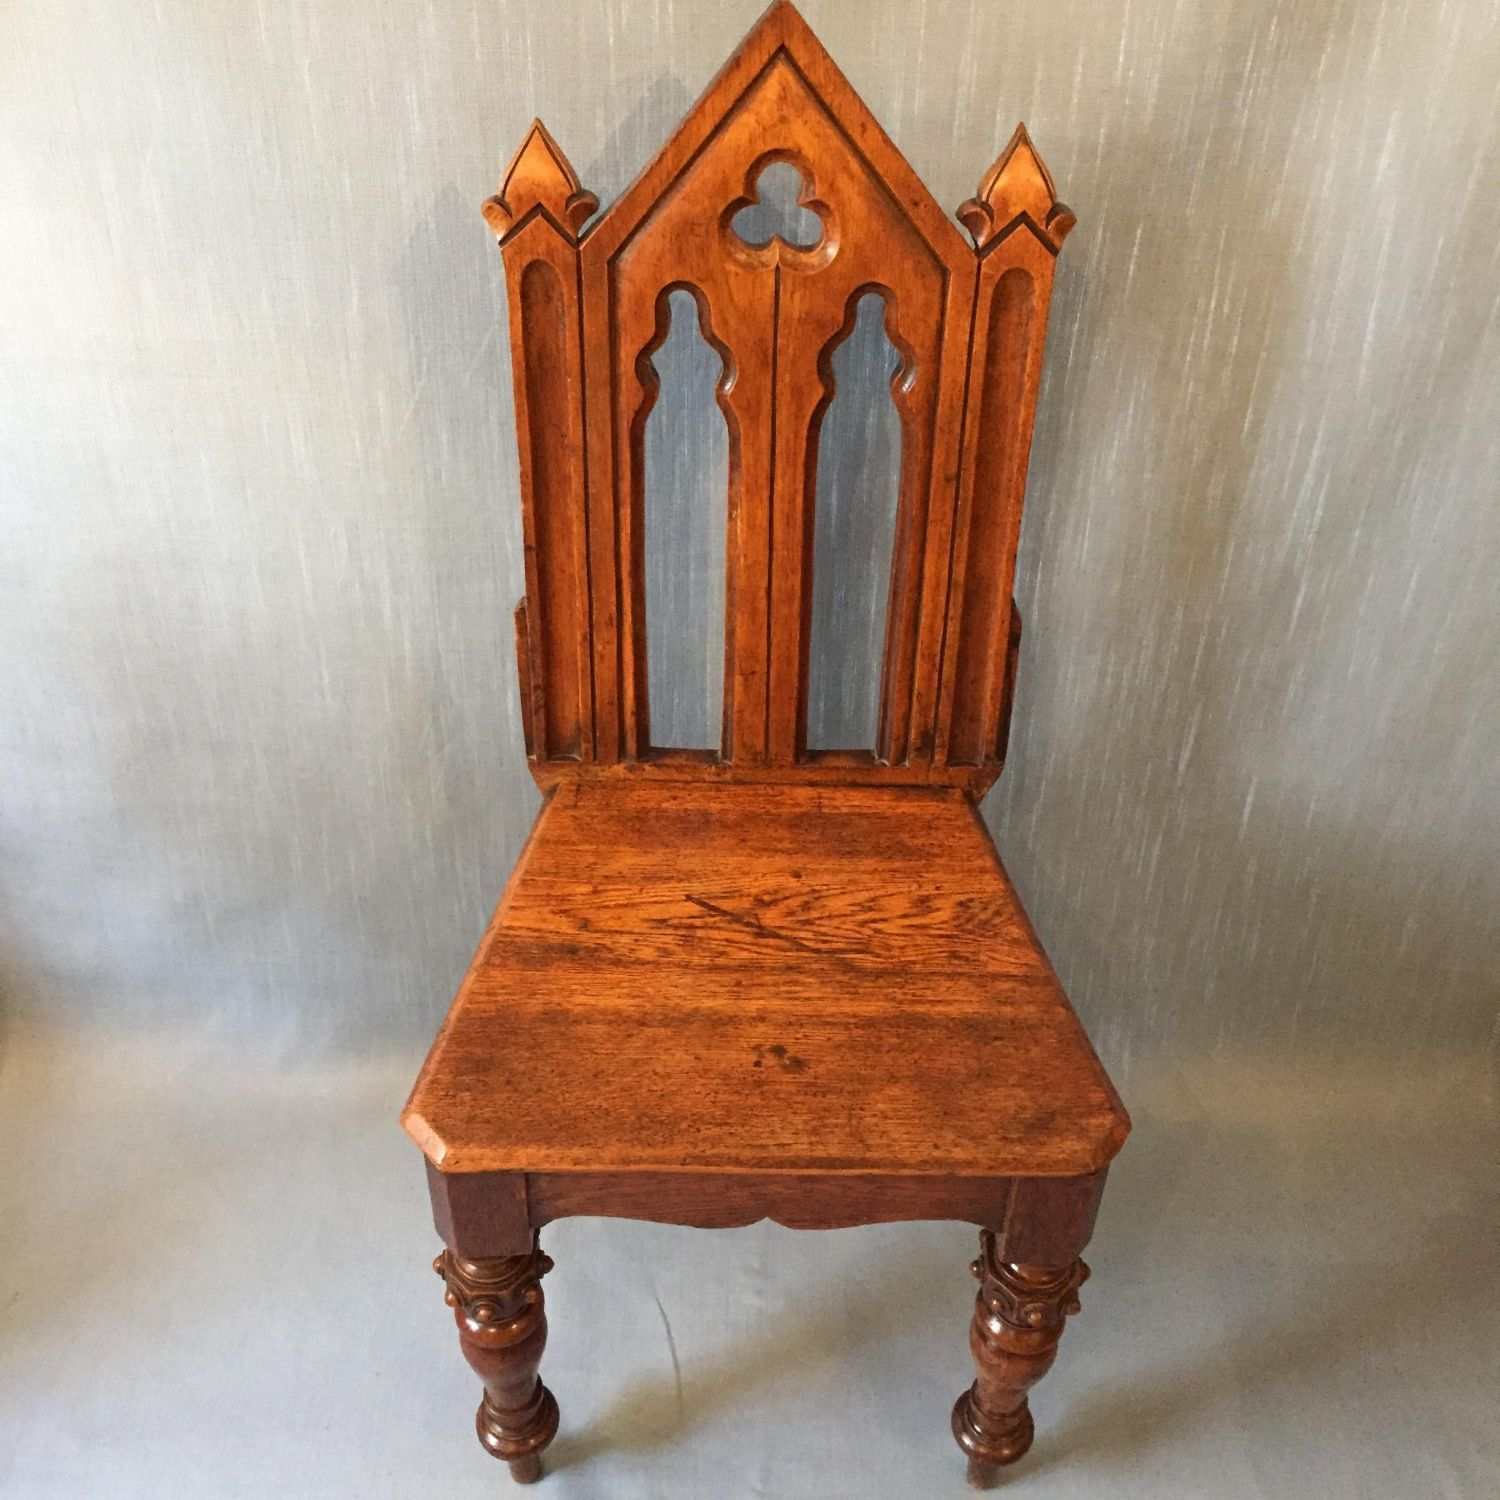 Golden oak gothic revival hall chair furniture etc for Furniture etc